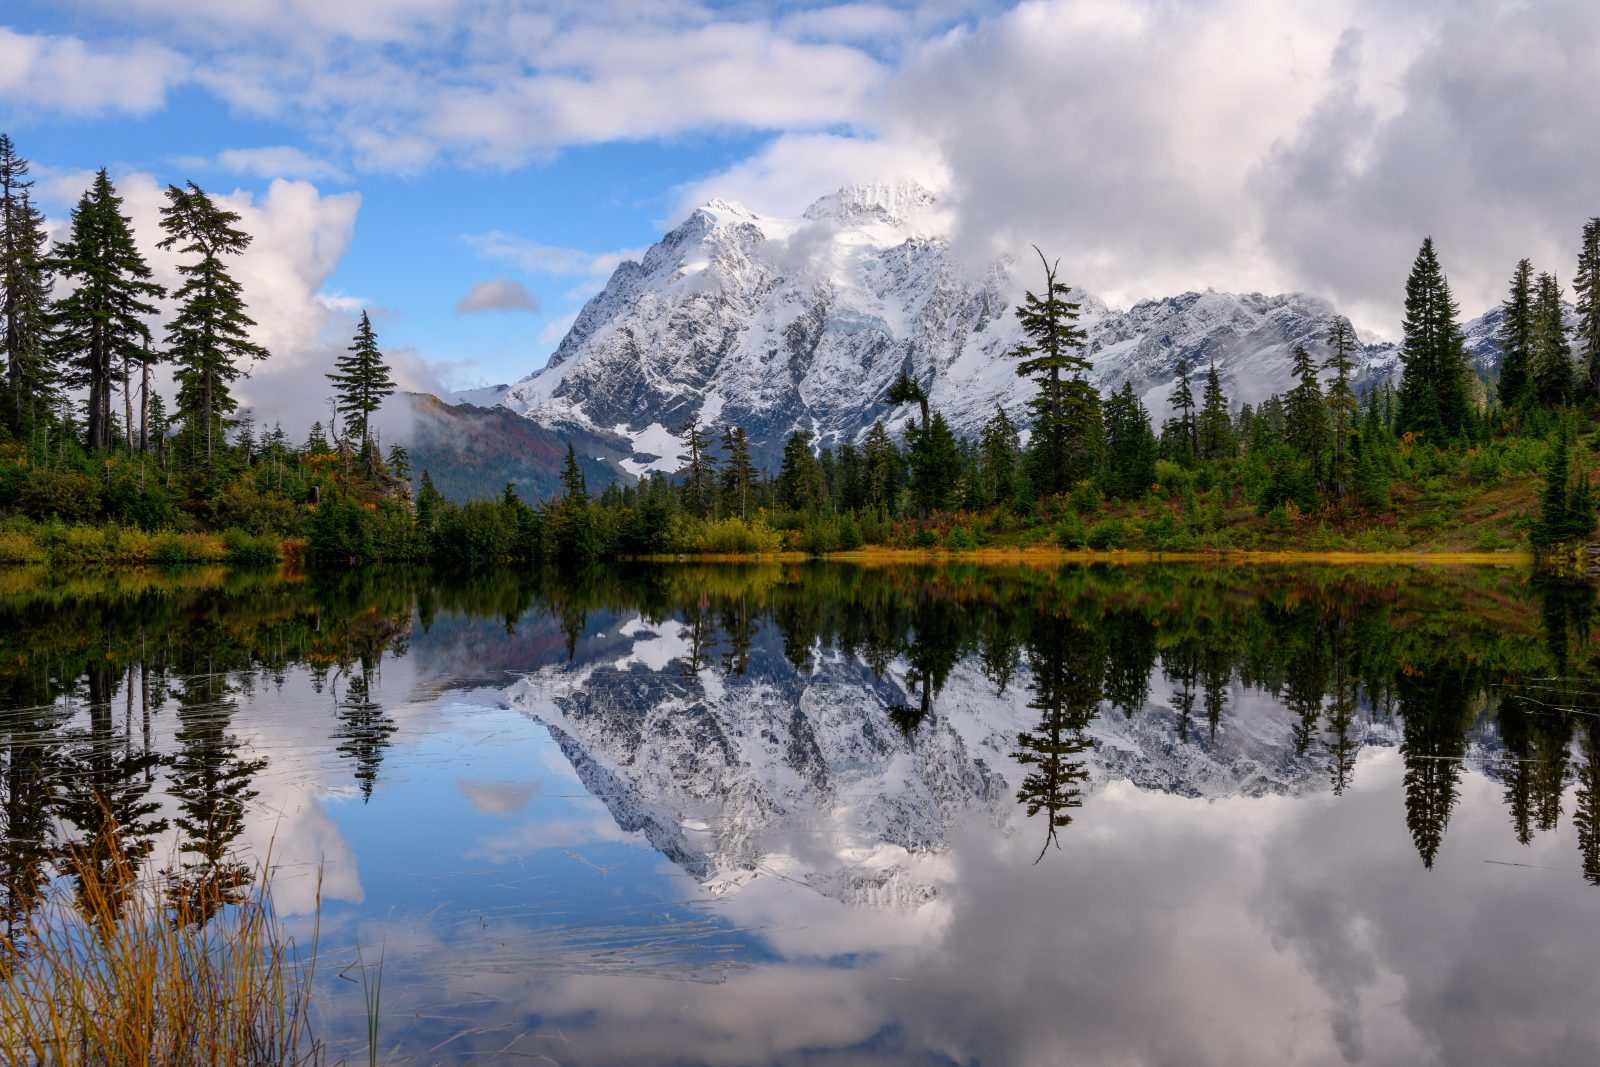 Mount Shuksan and Picture Lake